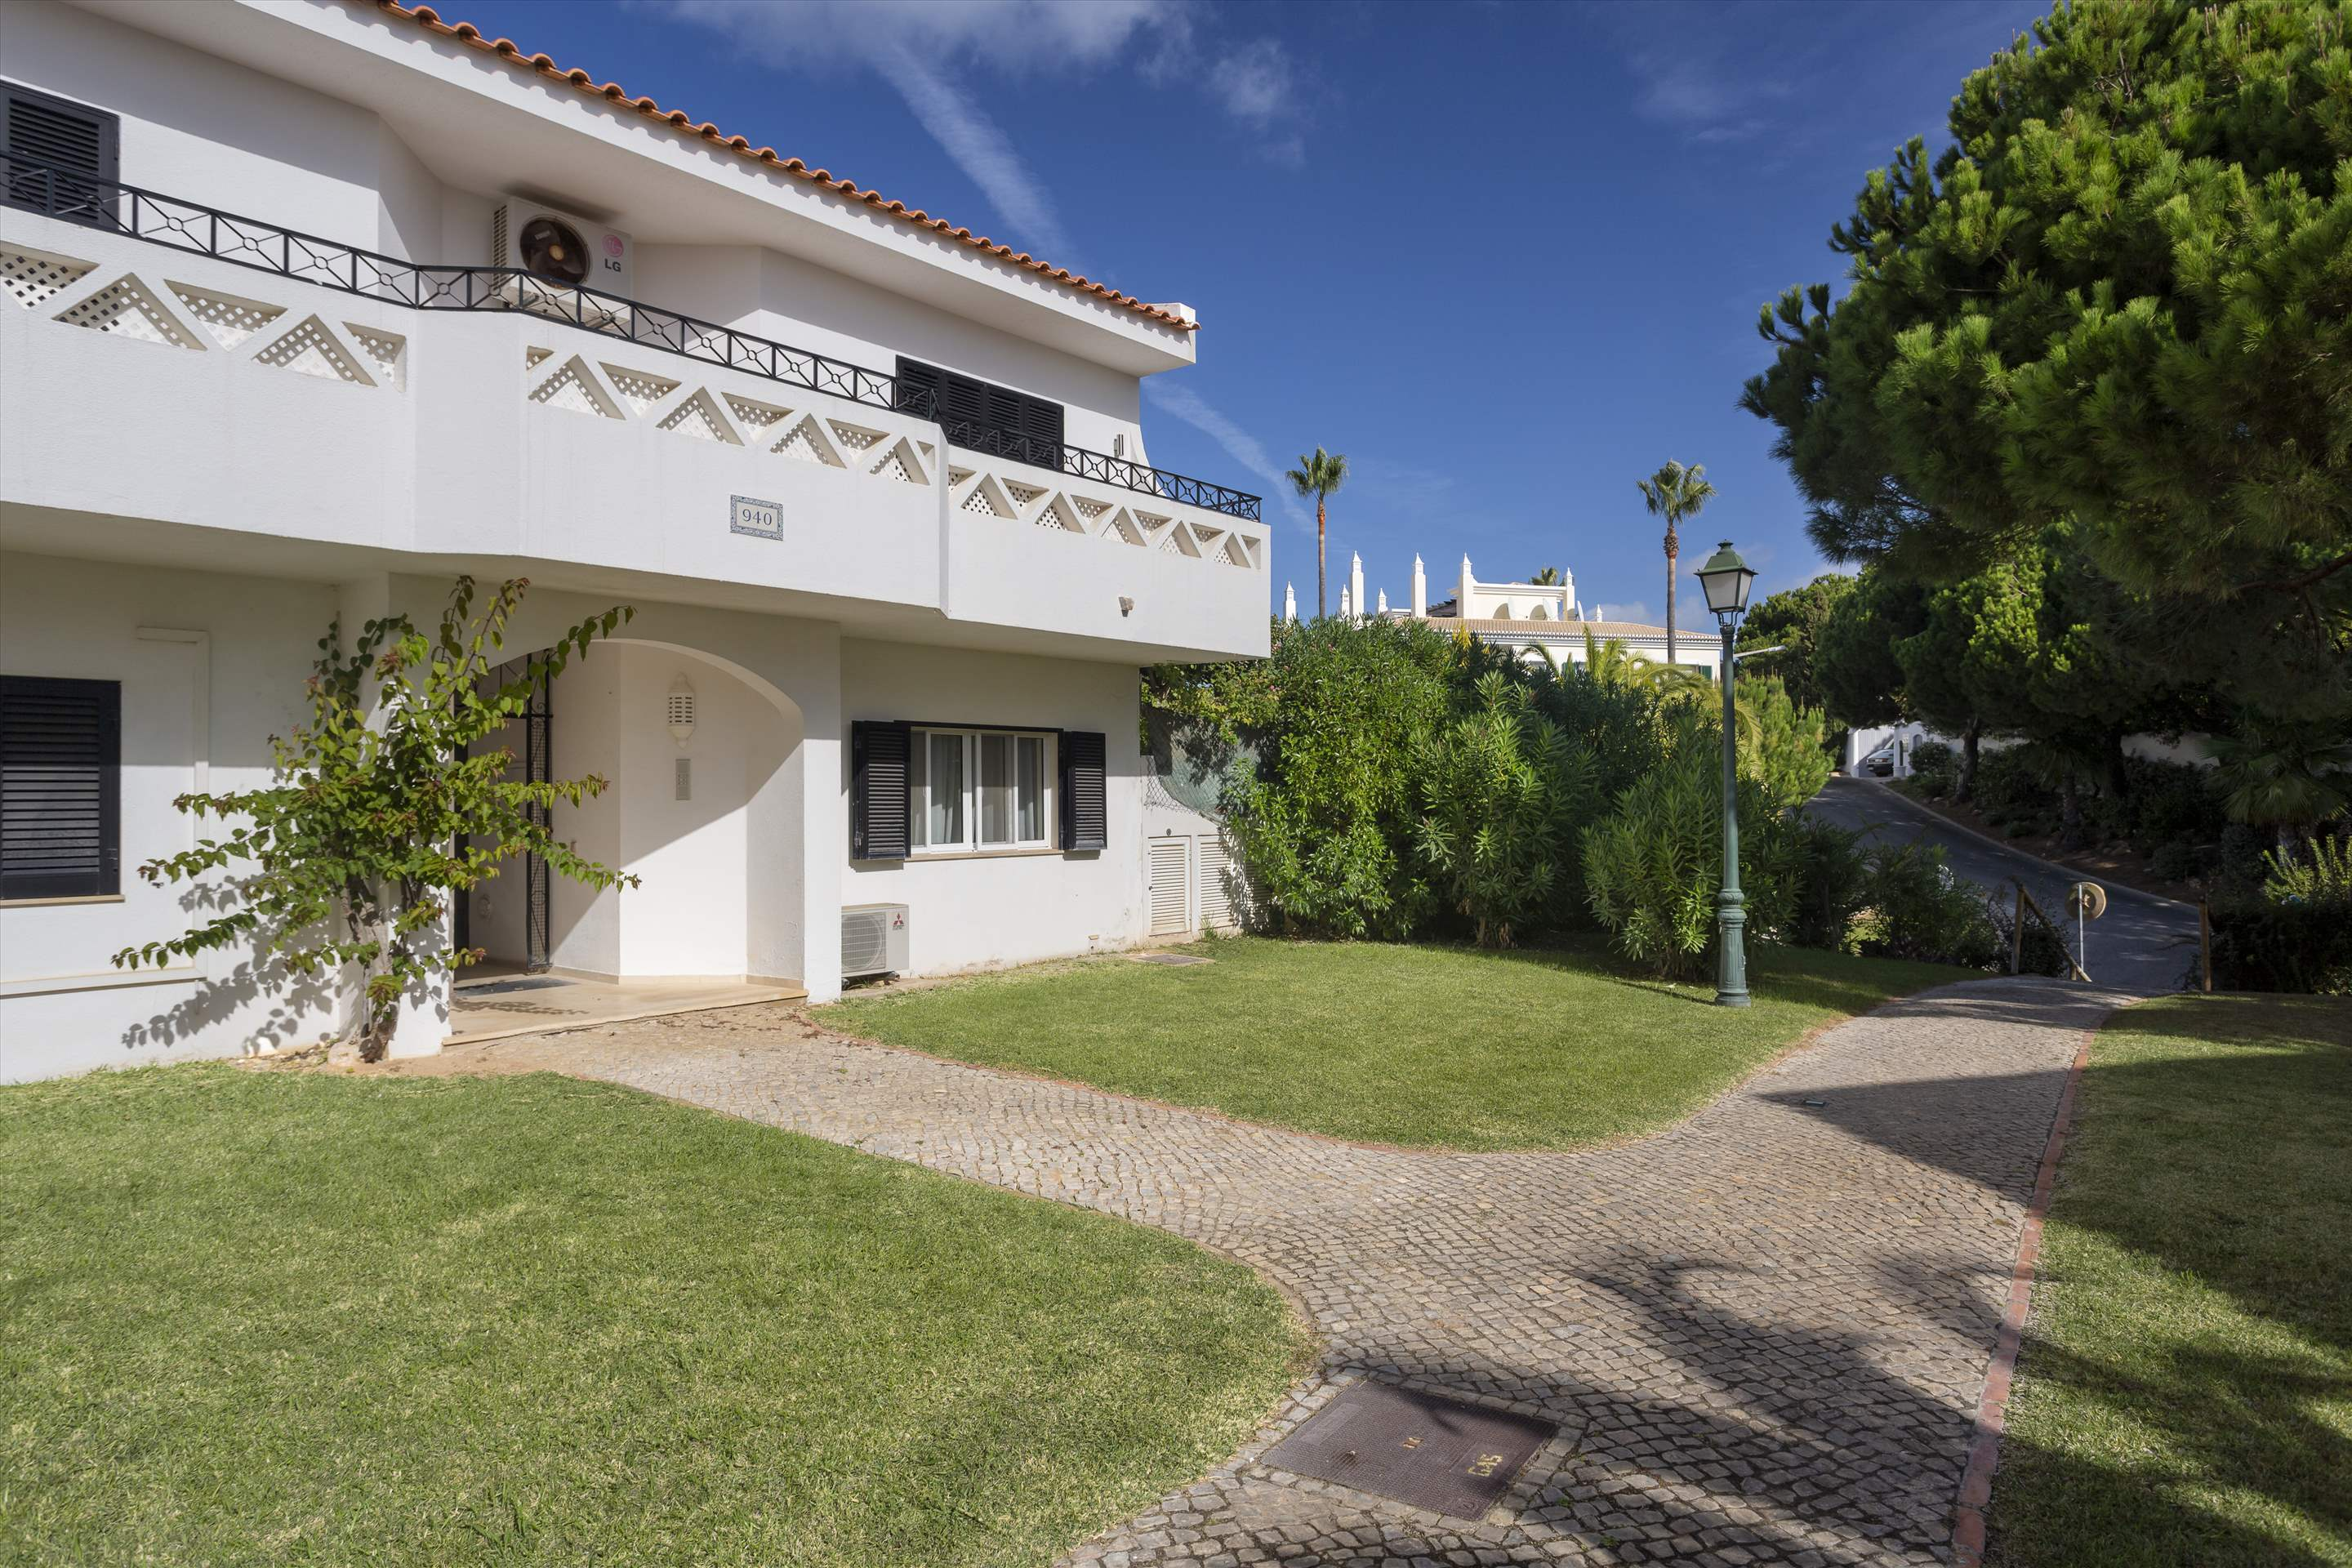 Apartment Academia, 3 bedroom apartment in Vale do Lobo, Algarve Photo #1